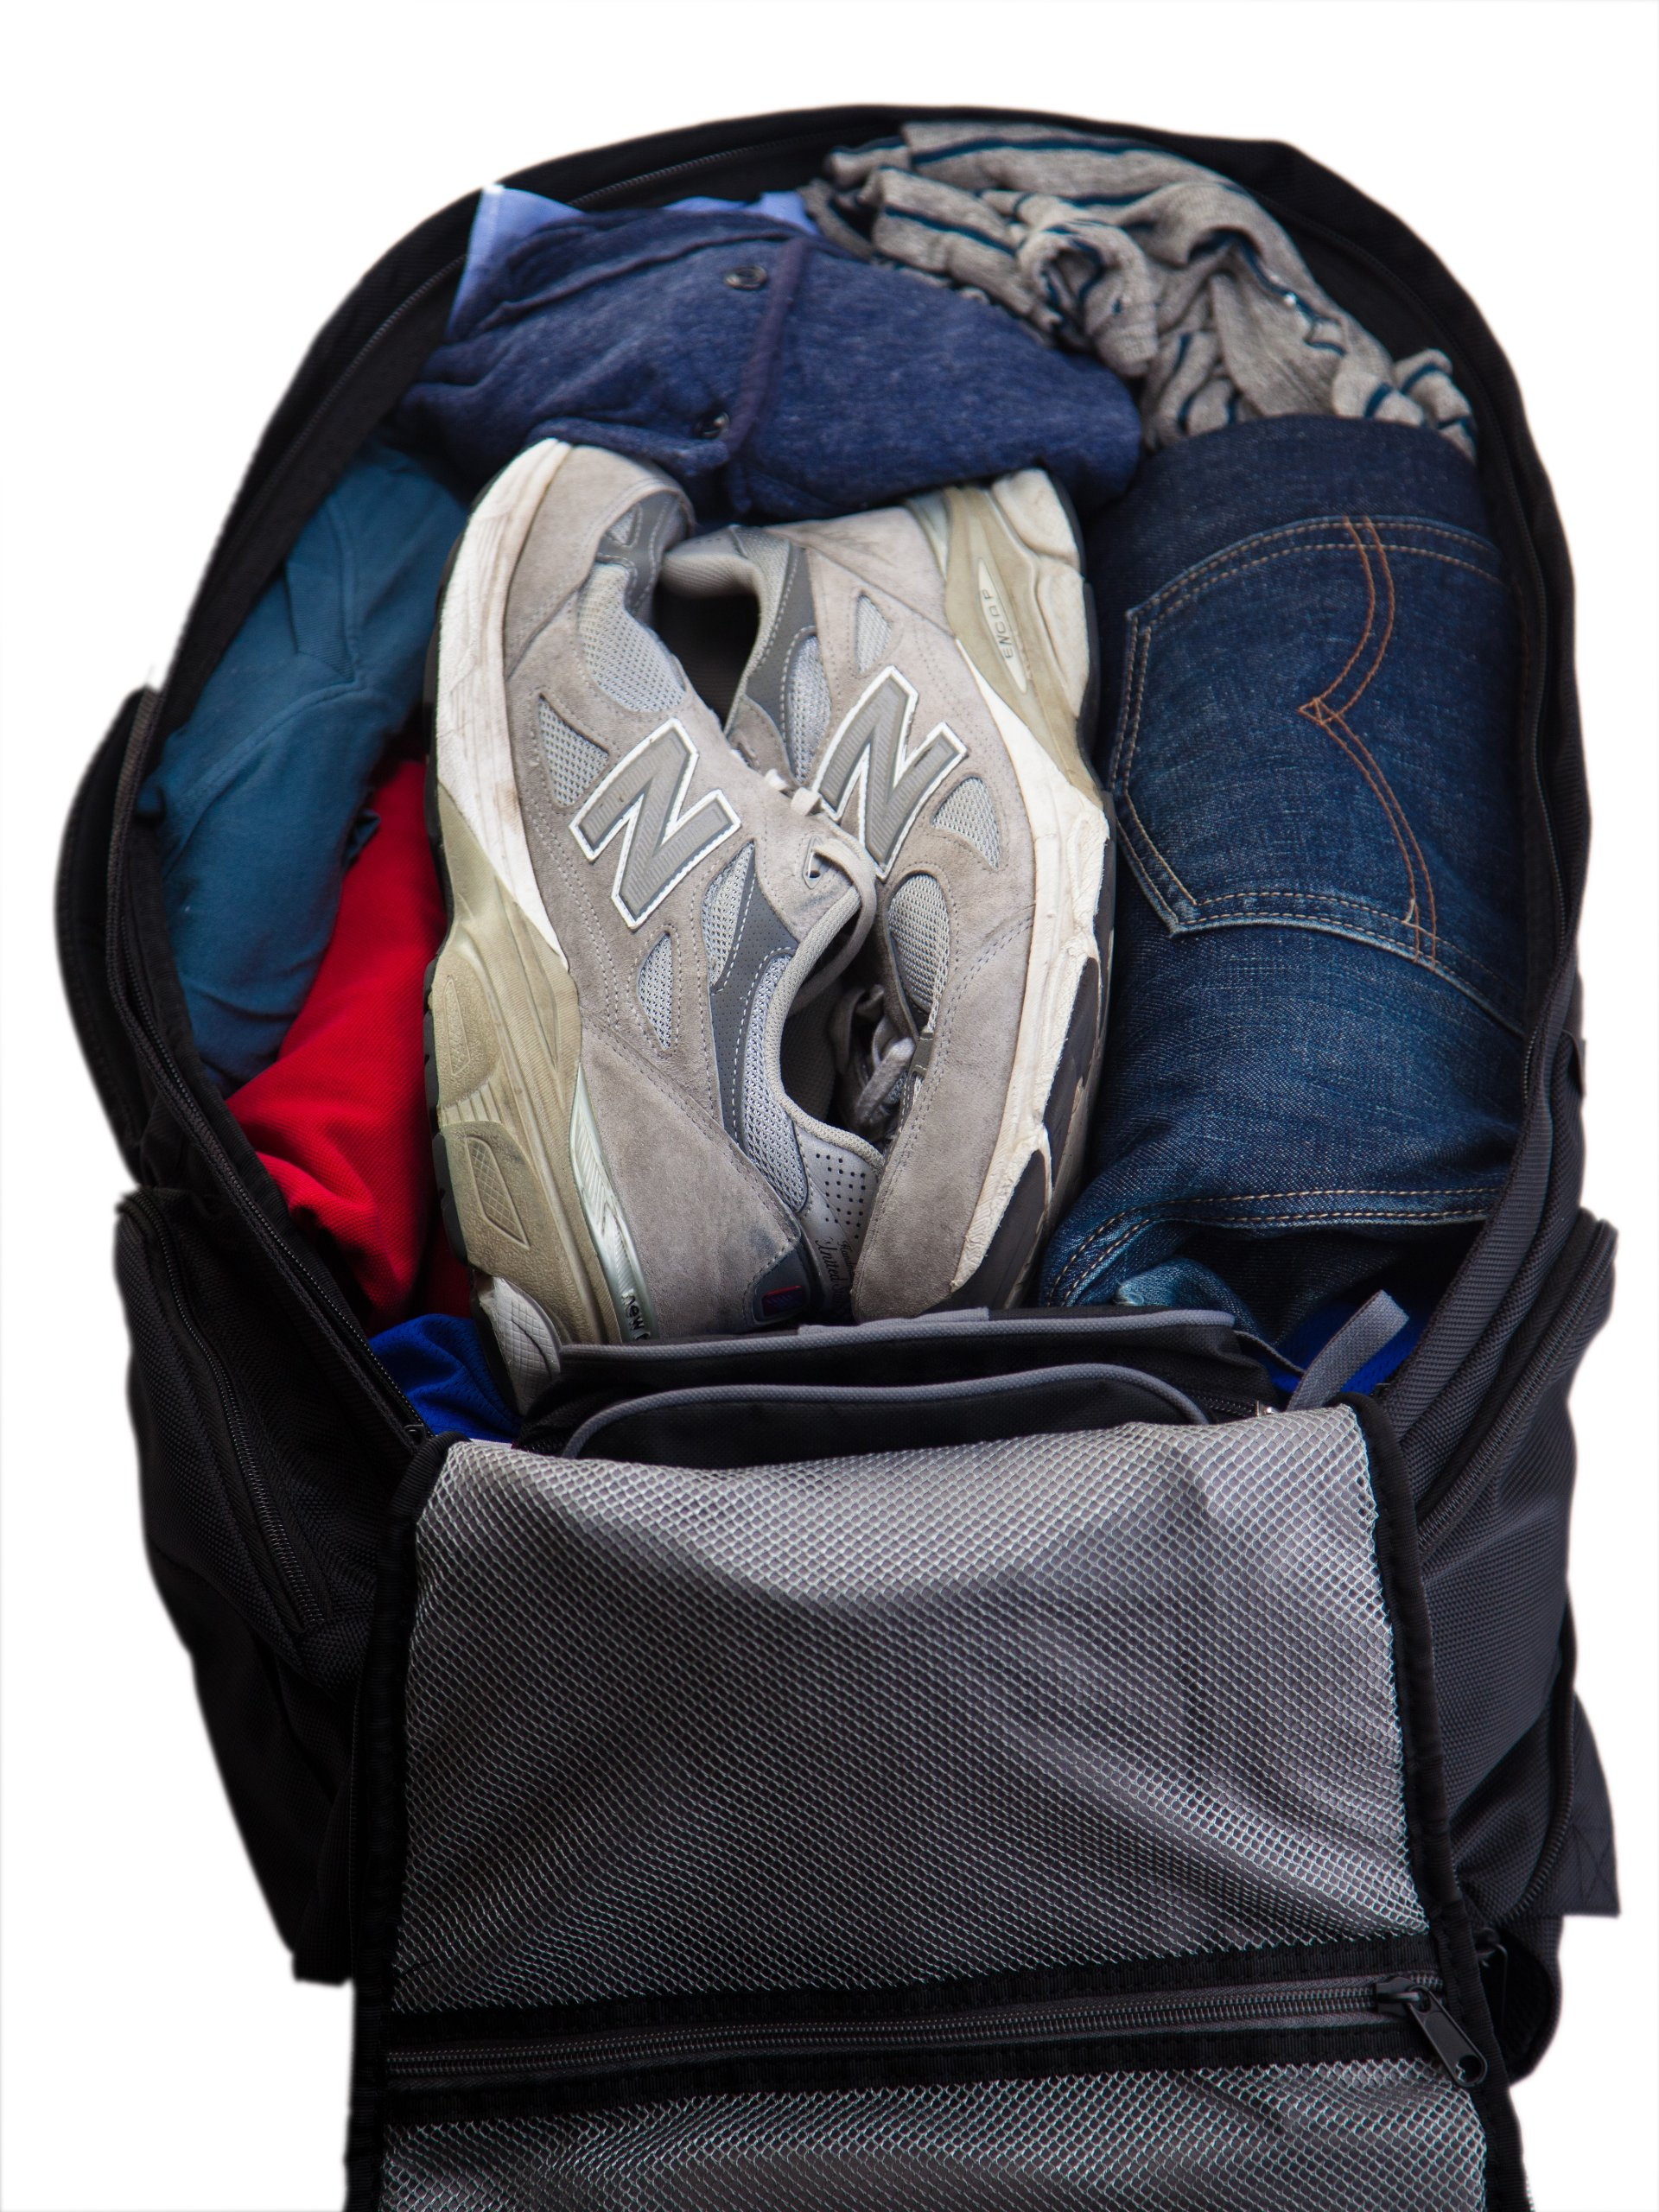 Tortuga Travel Backpack - 44L Maximum-Sized Carry On Travel Backpack by Tortuga (Image #5)